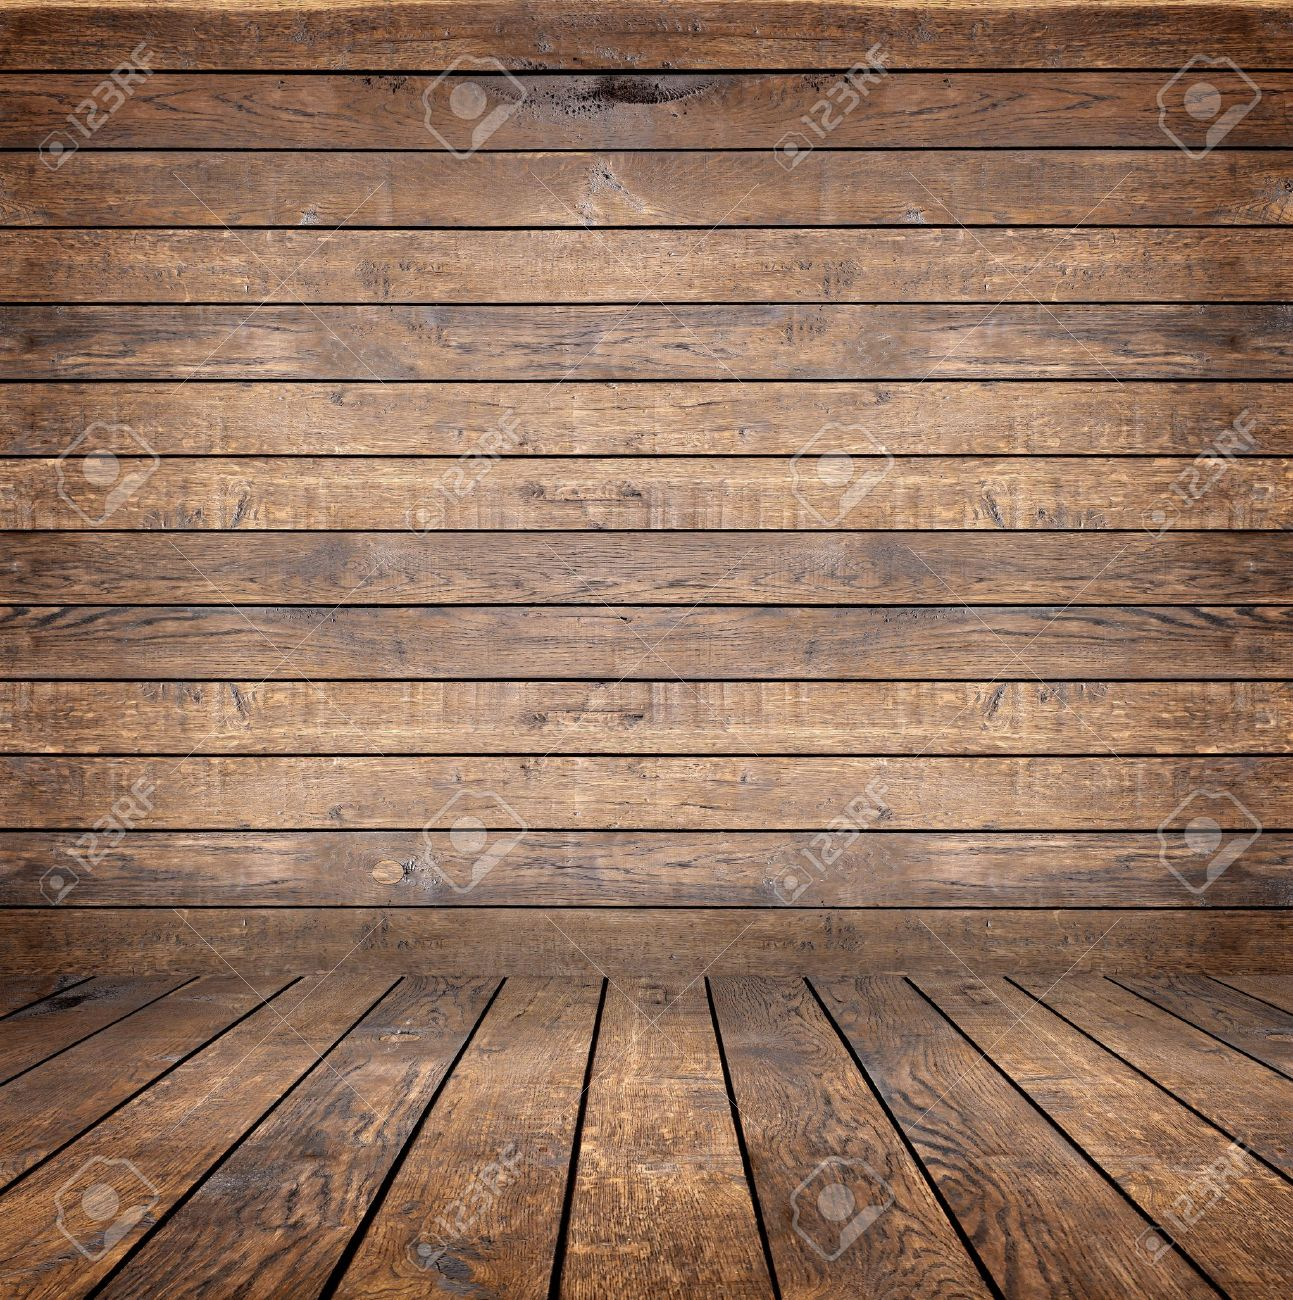 Wood Texture wood texture stock photos. royalty free wood texture images and